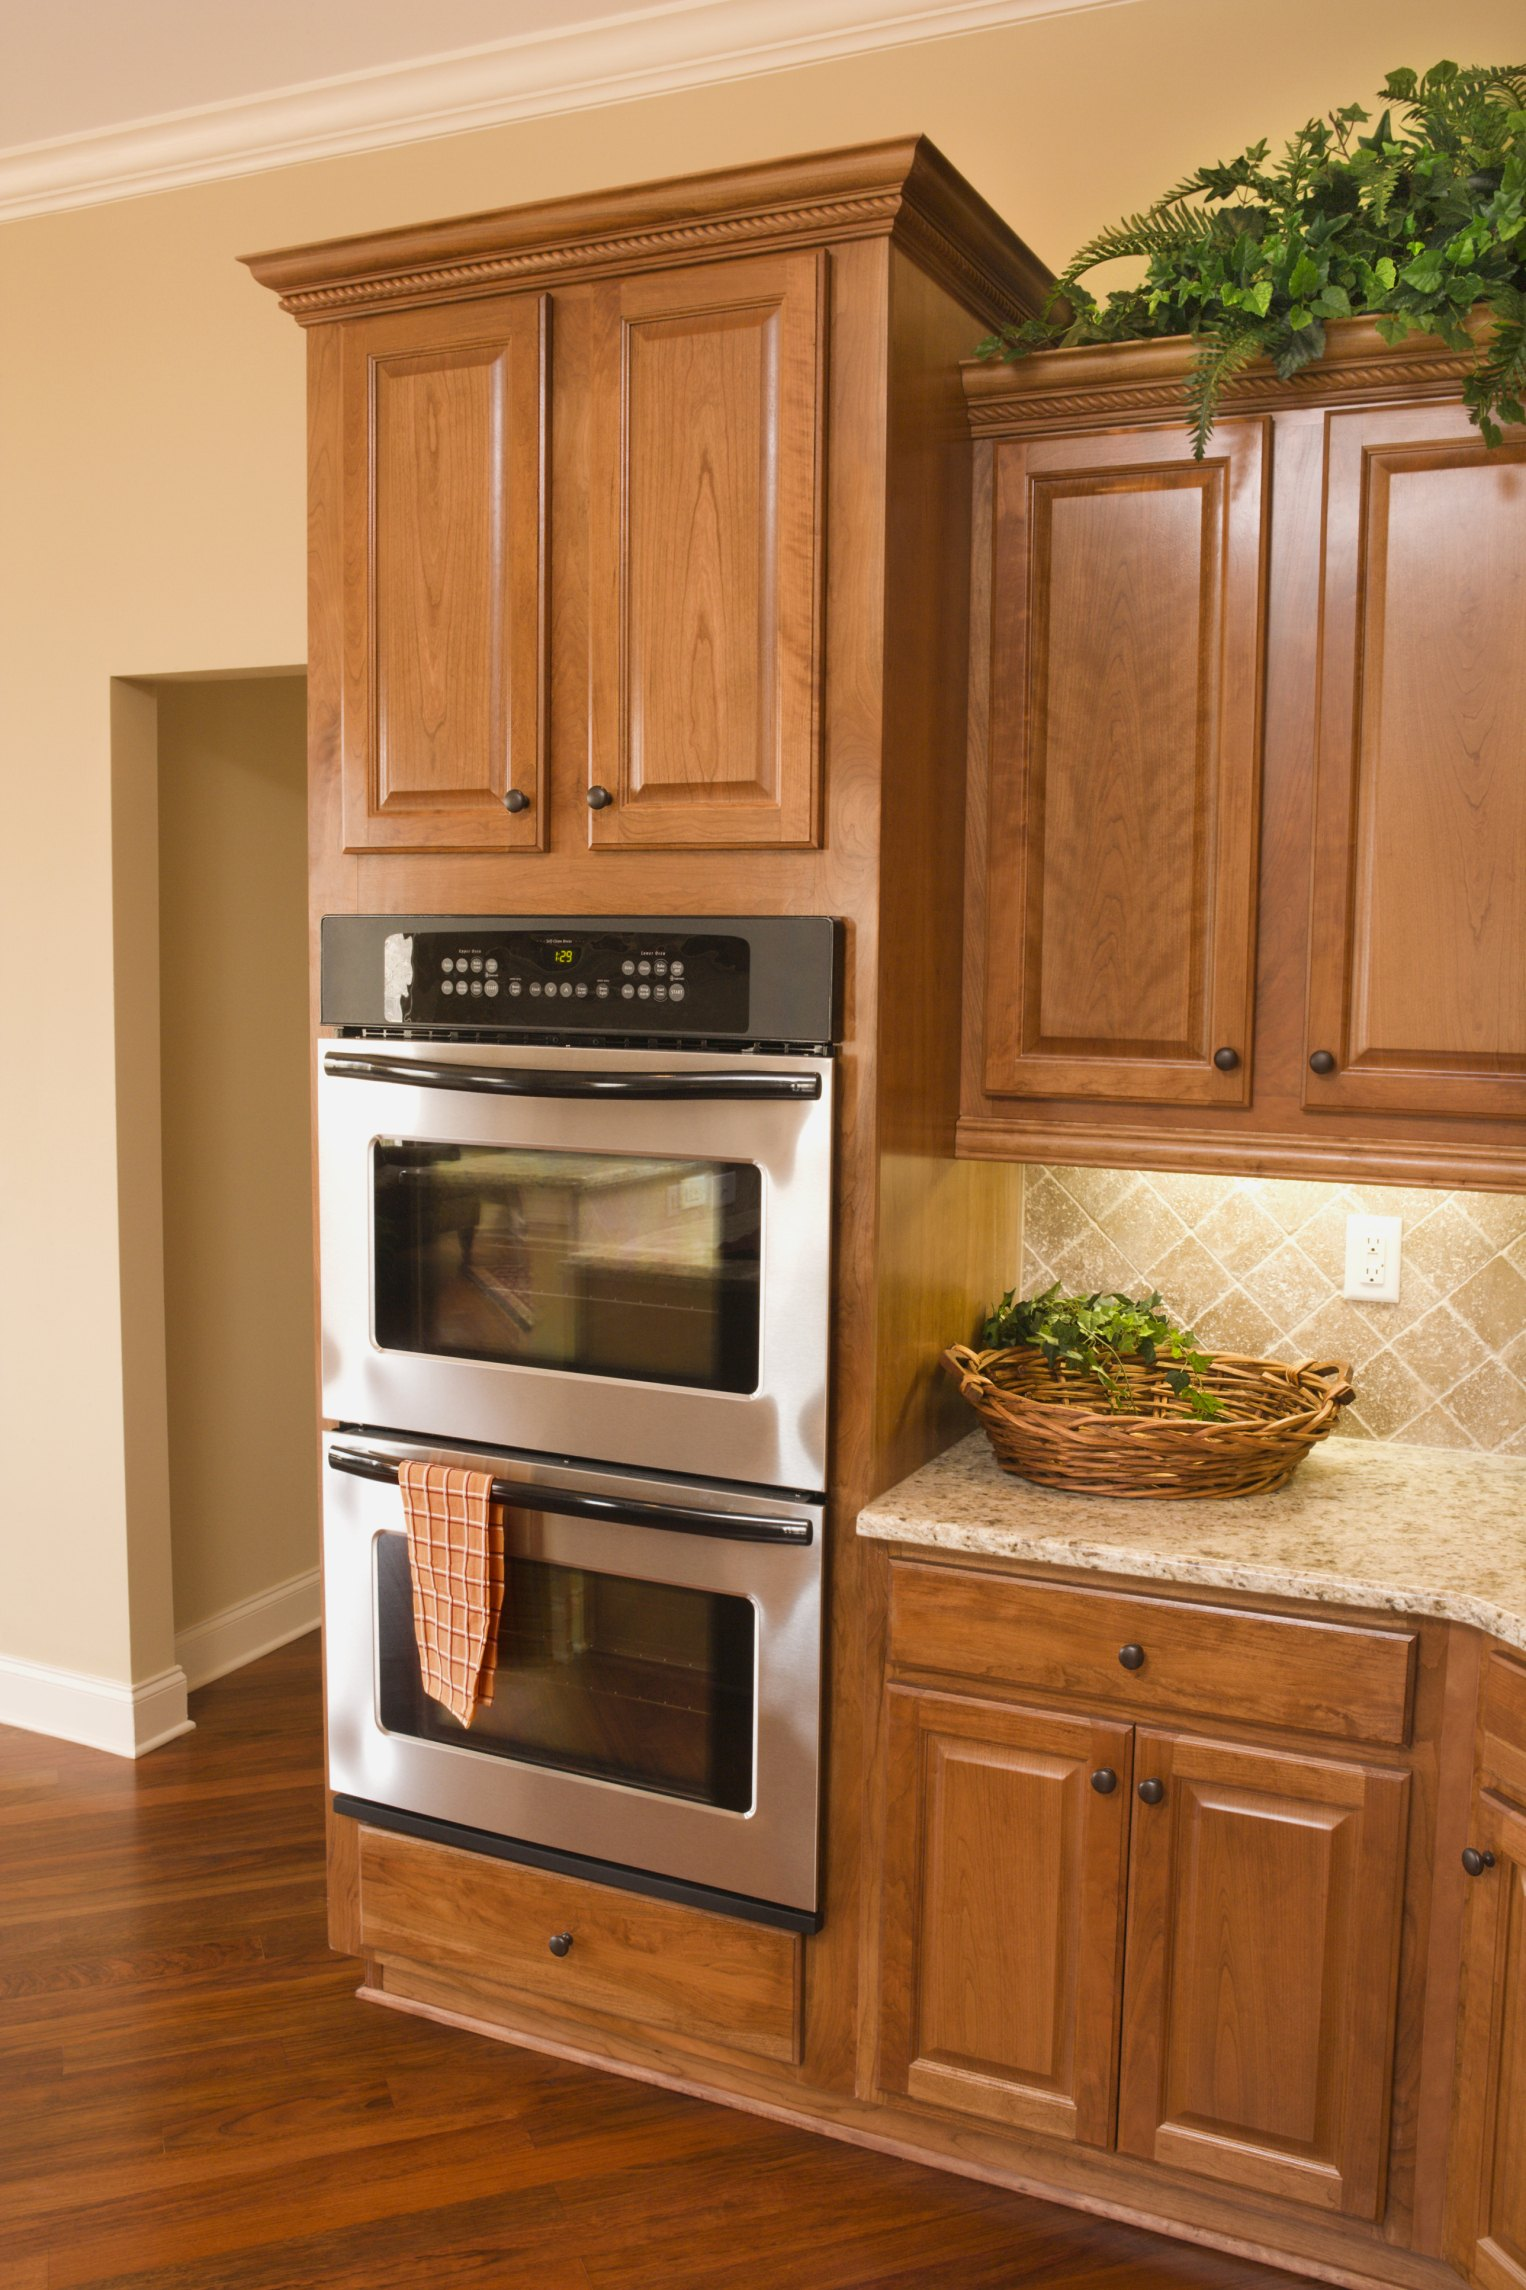 What Kind of Deglosser Can You Use for Cabinets? | eHow